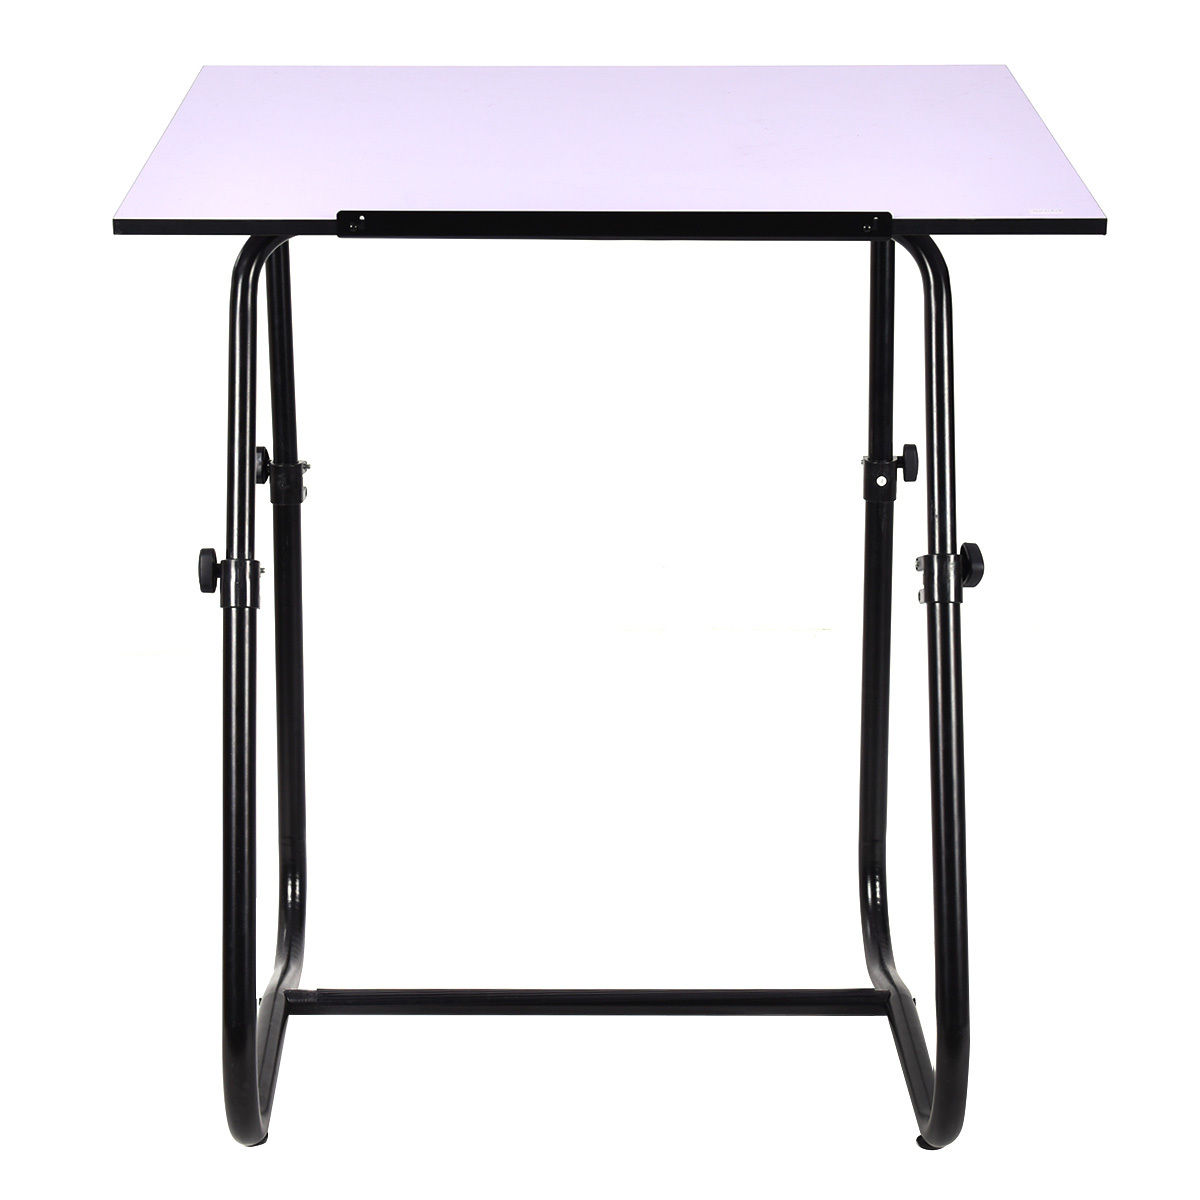 Giantex Drawing Desk Portable Drafting Table Adjustable Art Craft  Workstation Hobby White Modern Study Furniture HW52824 In Console Tables  From Furniture On ...